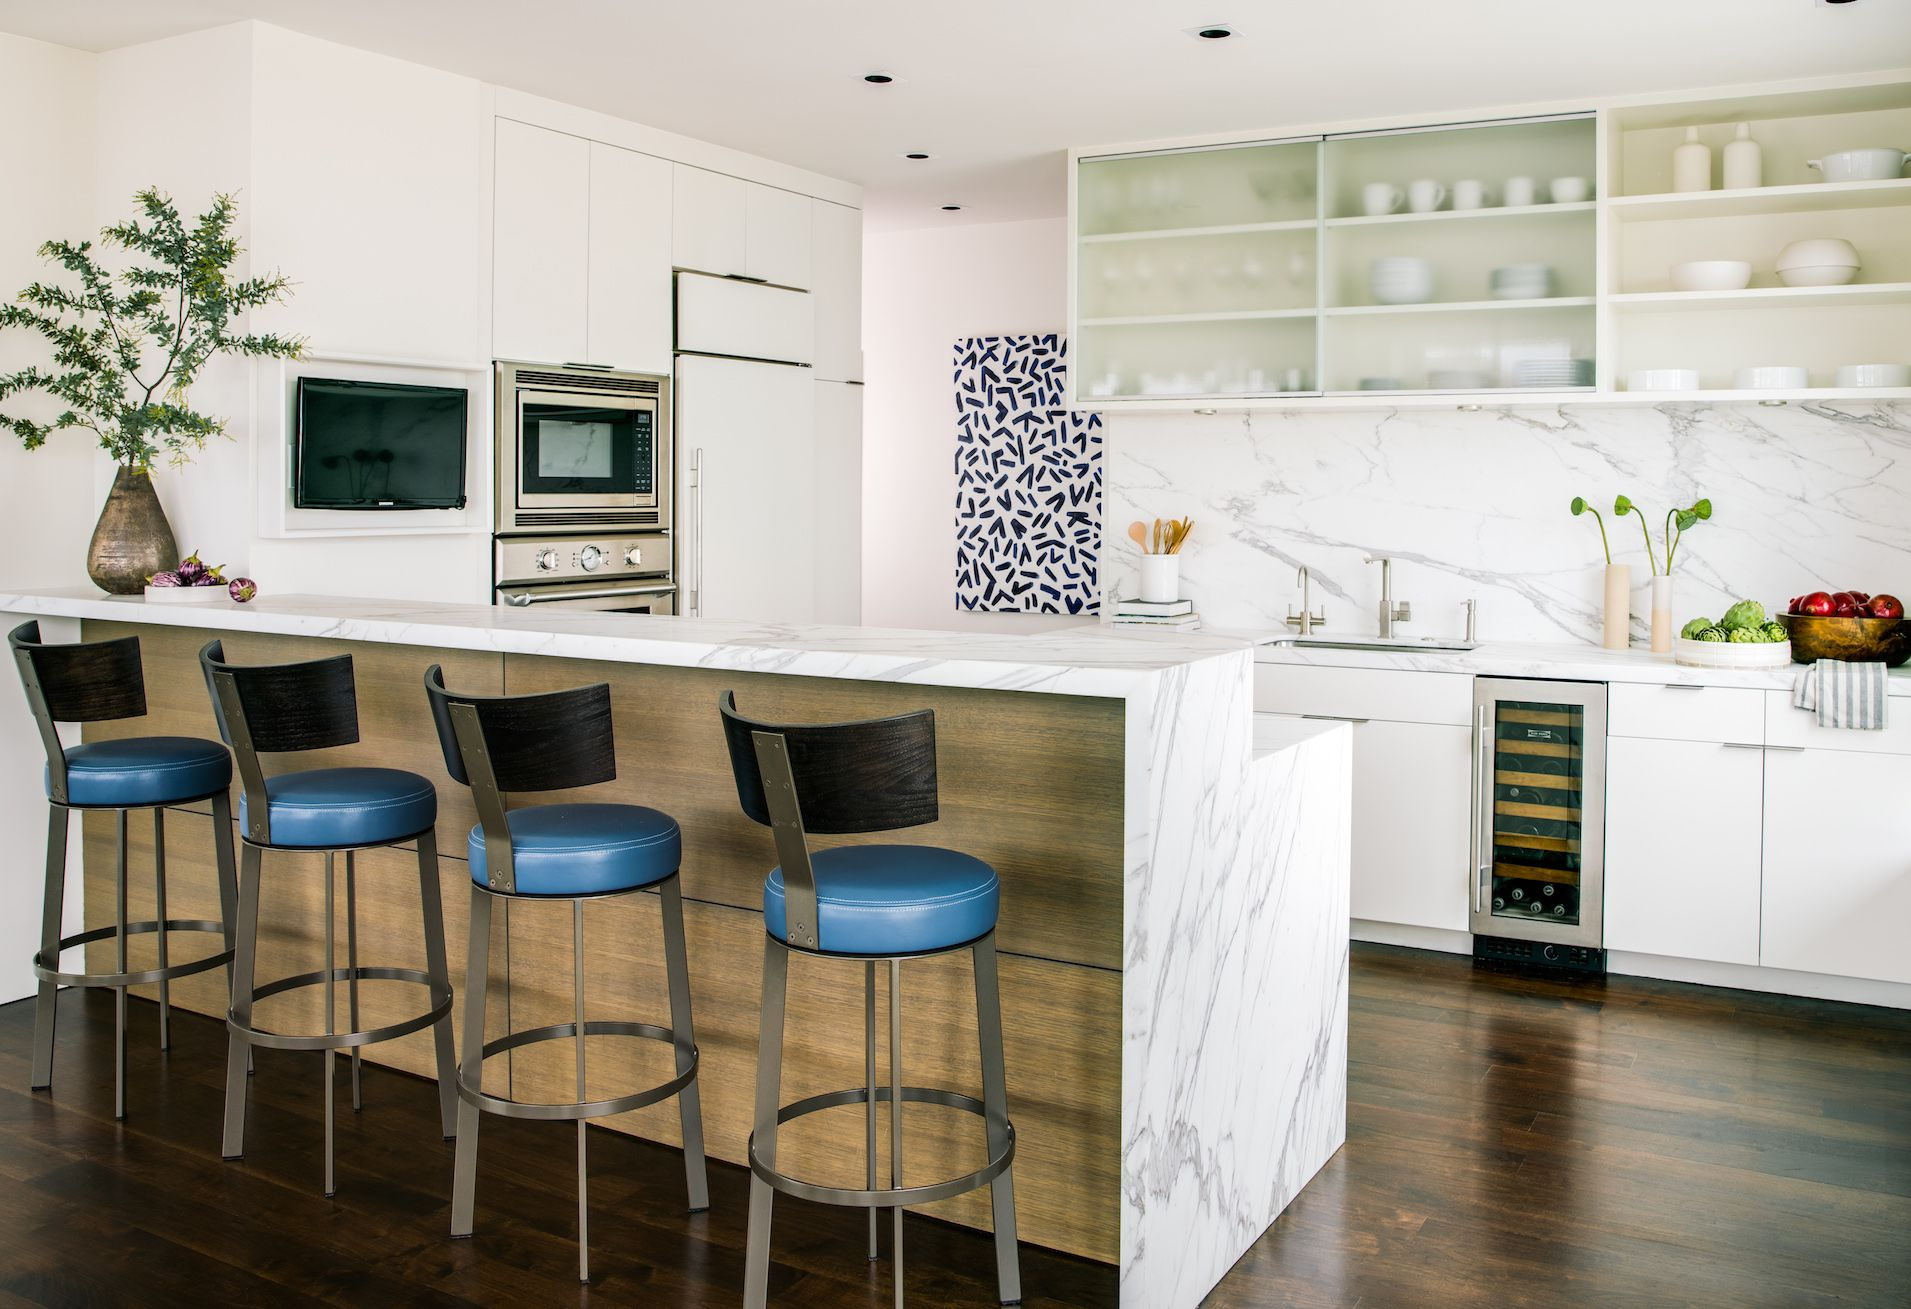 Top Kitchen Trends 2019 - What Kitchen Design Styles Are In & Out